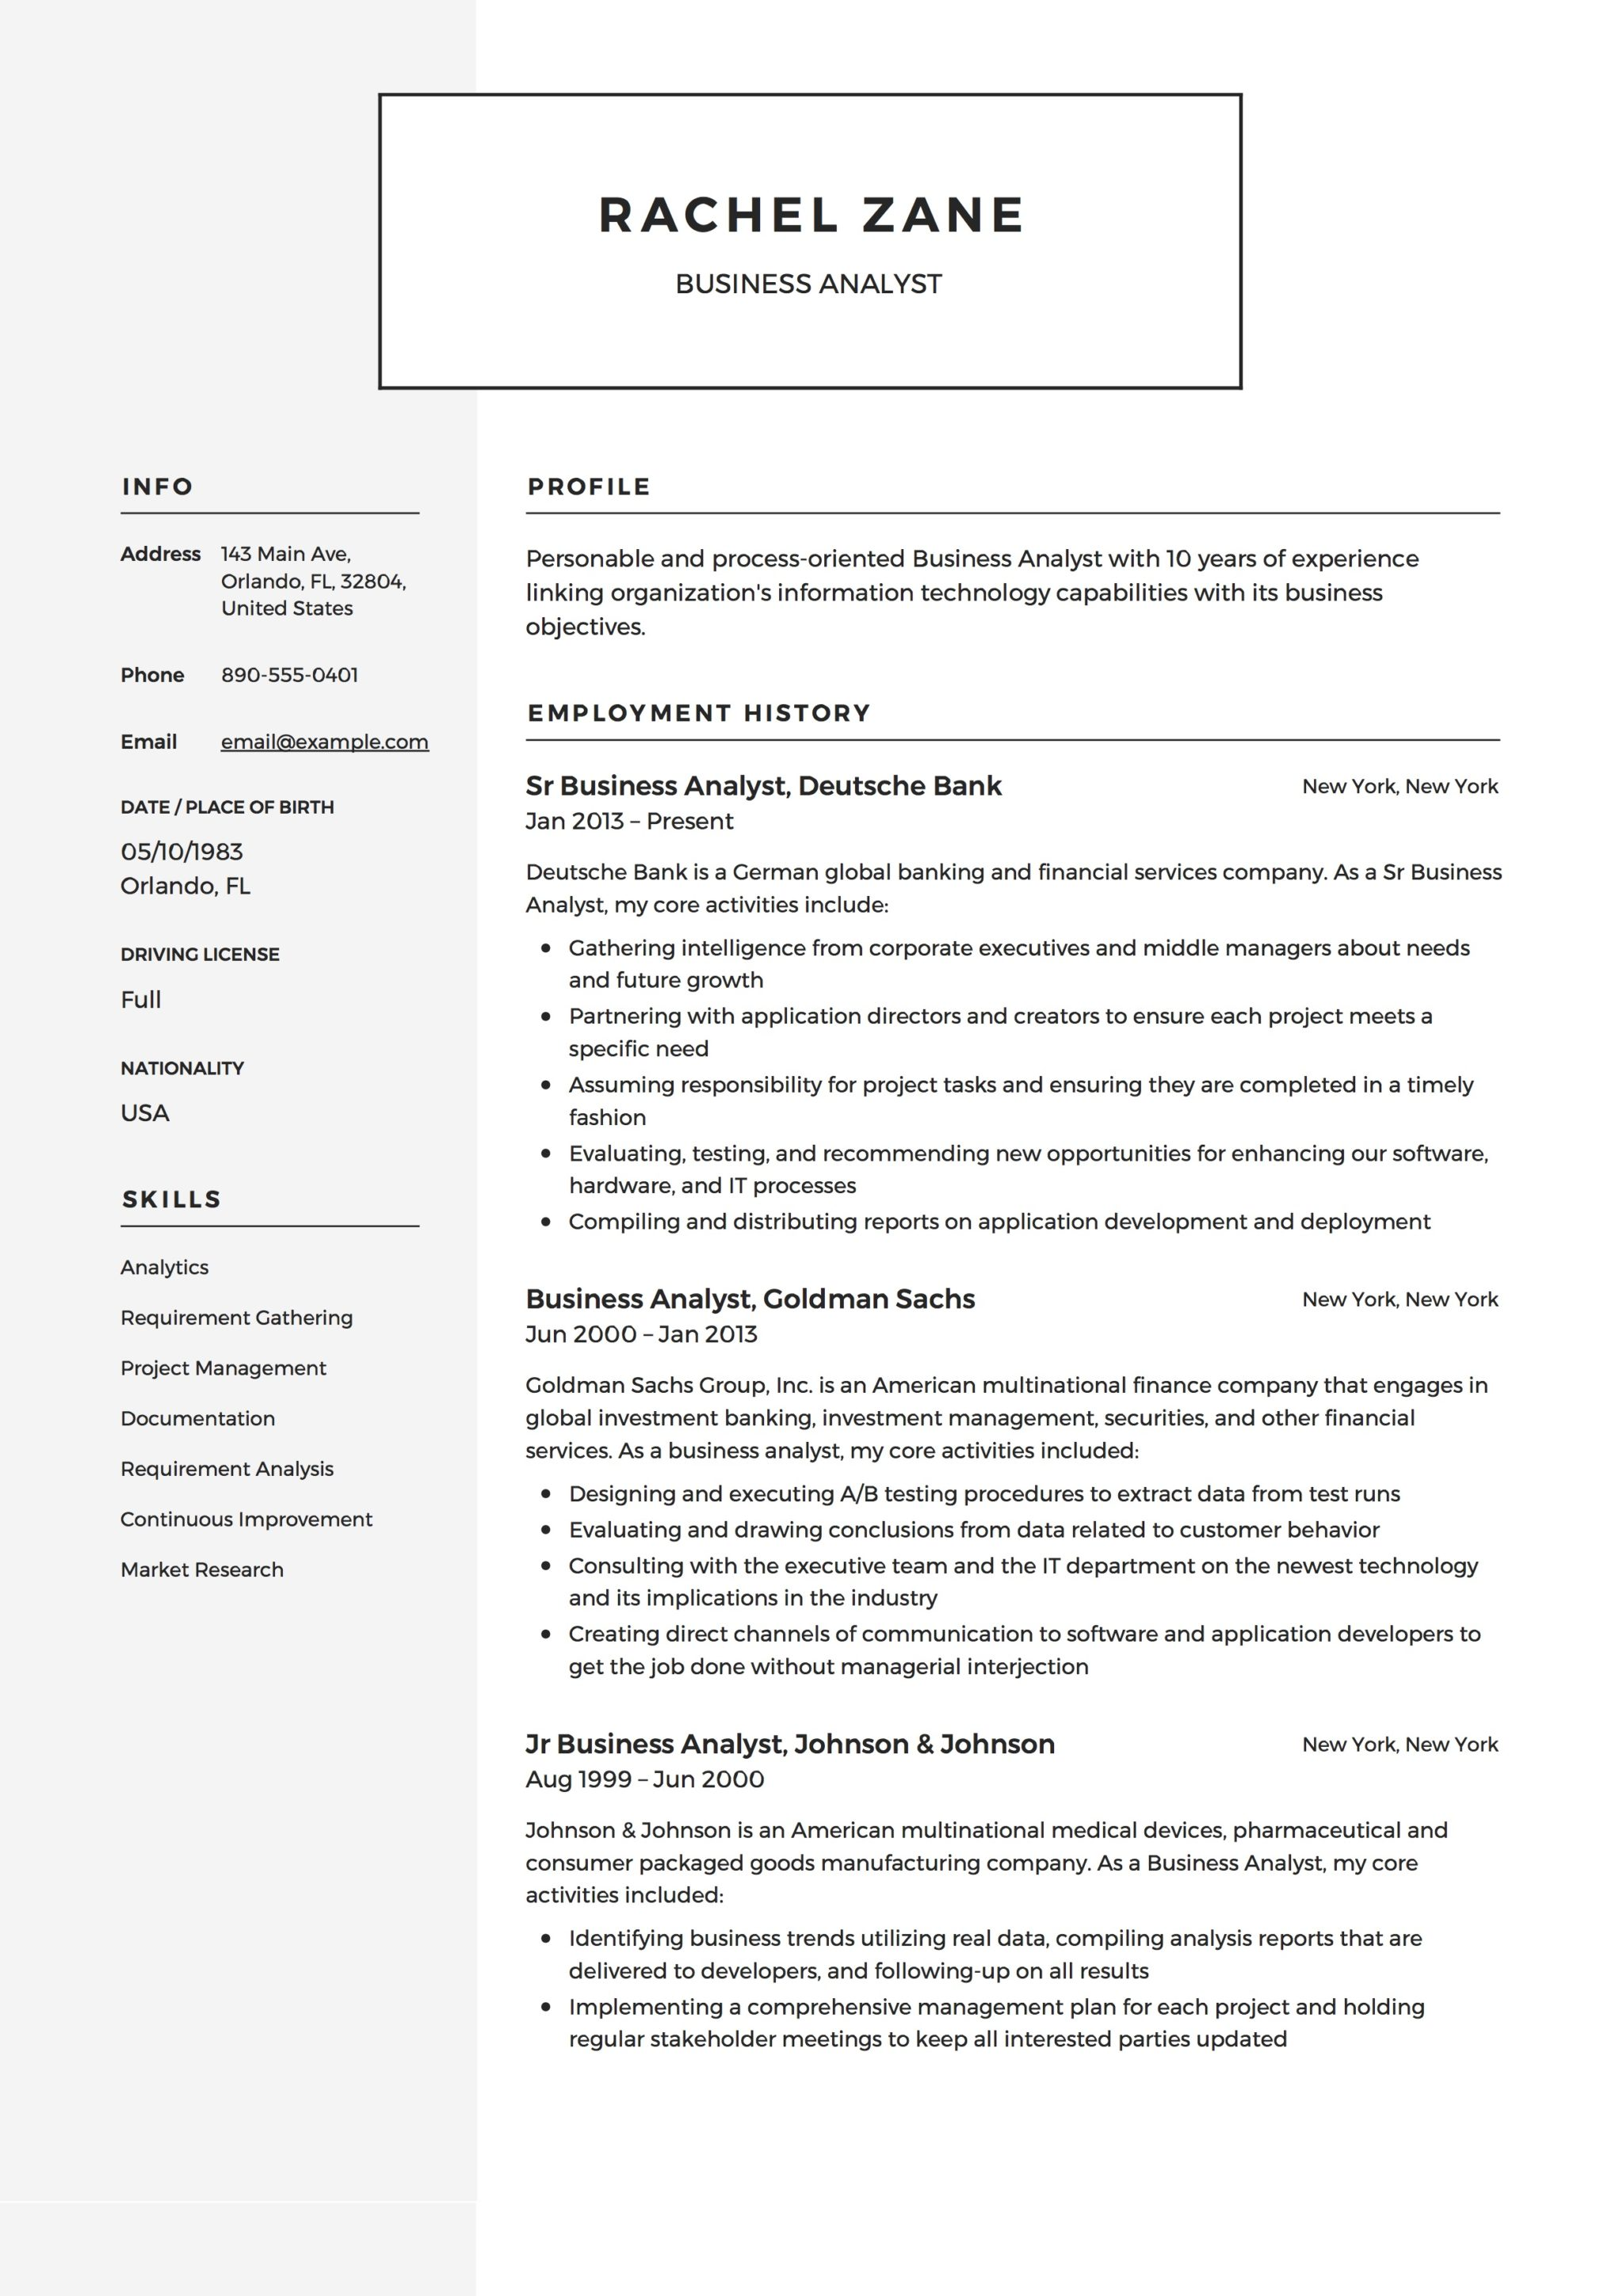 Resume Template Business Analyst  Sample Business Analyst Resume